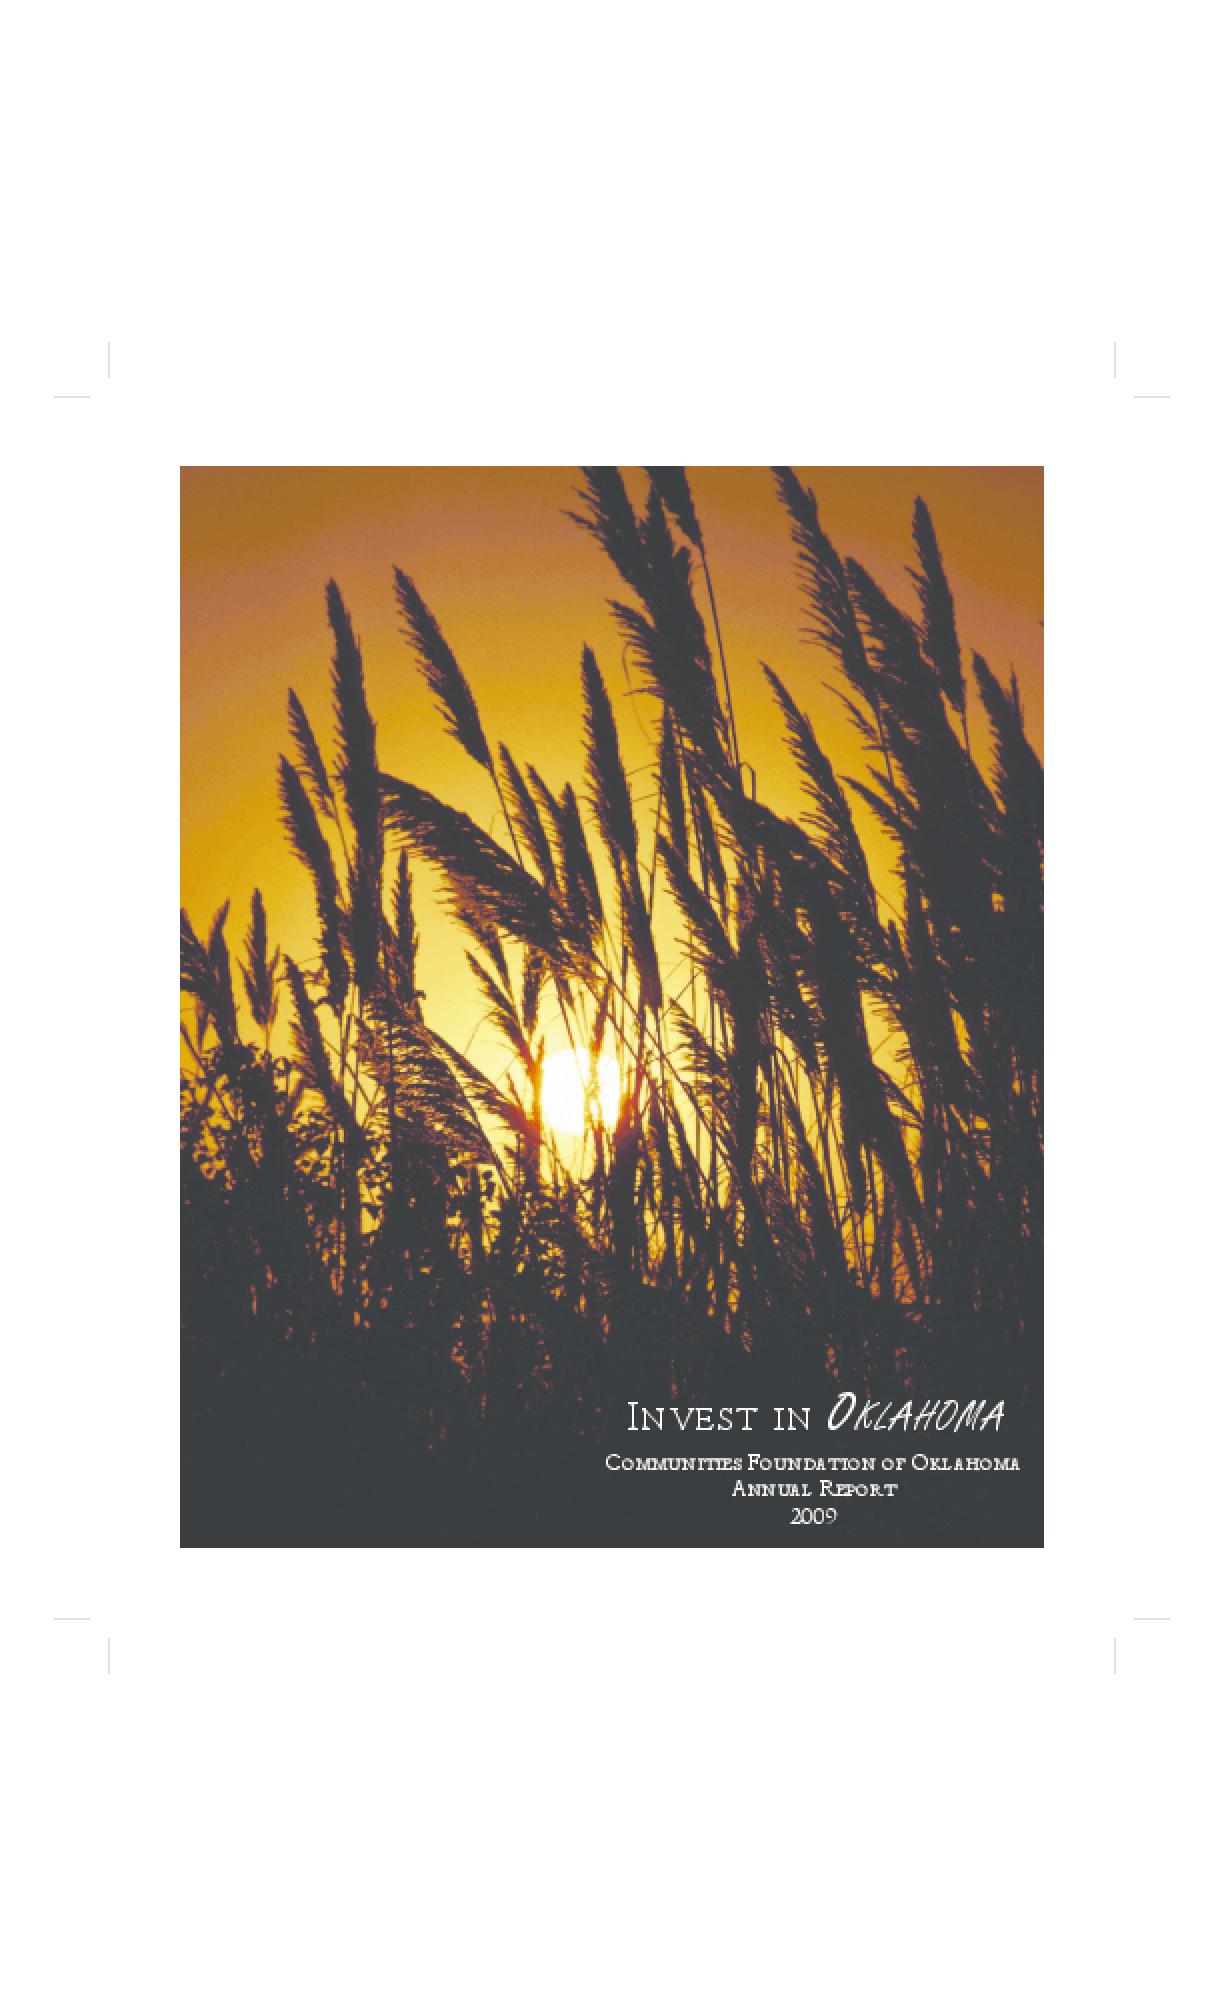 Communities Foundation of Oklahoma - 2009 Annual Report